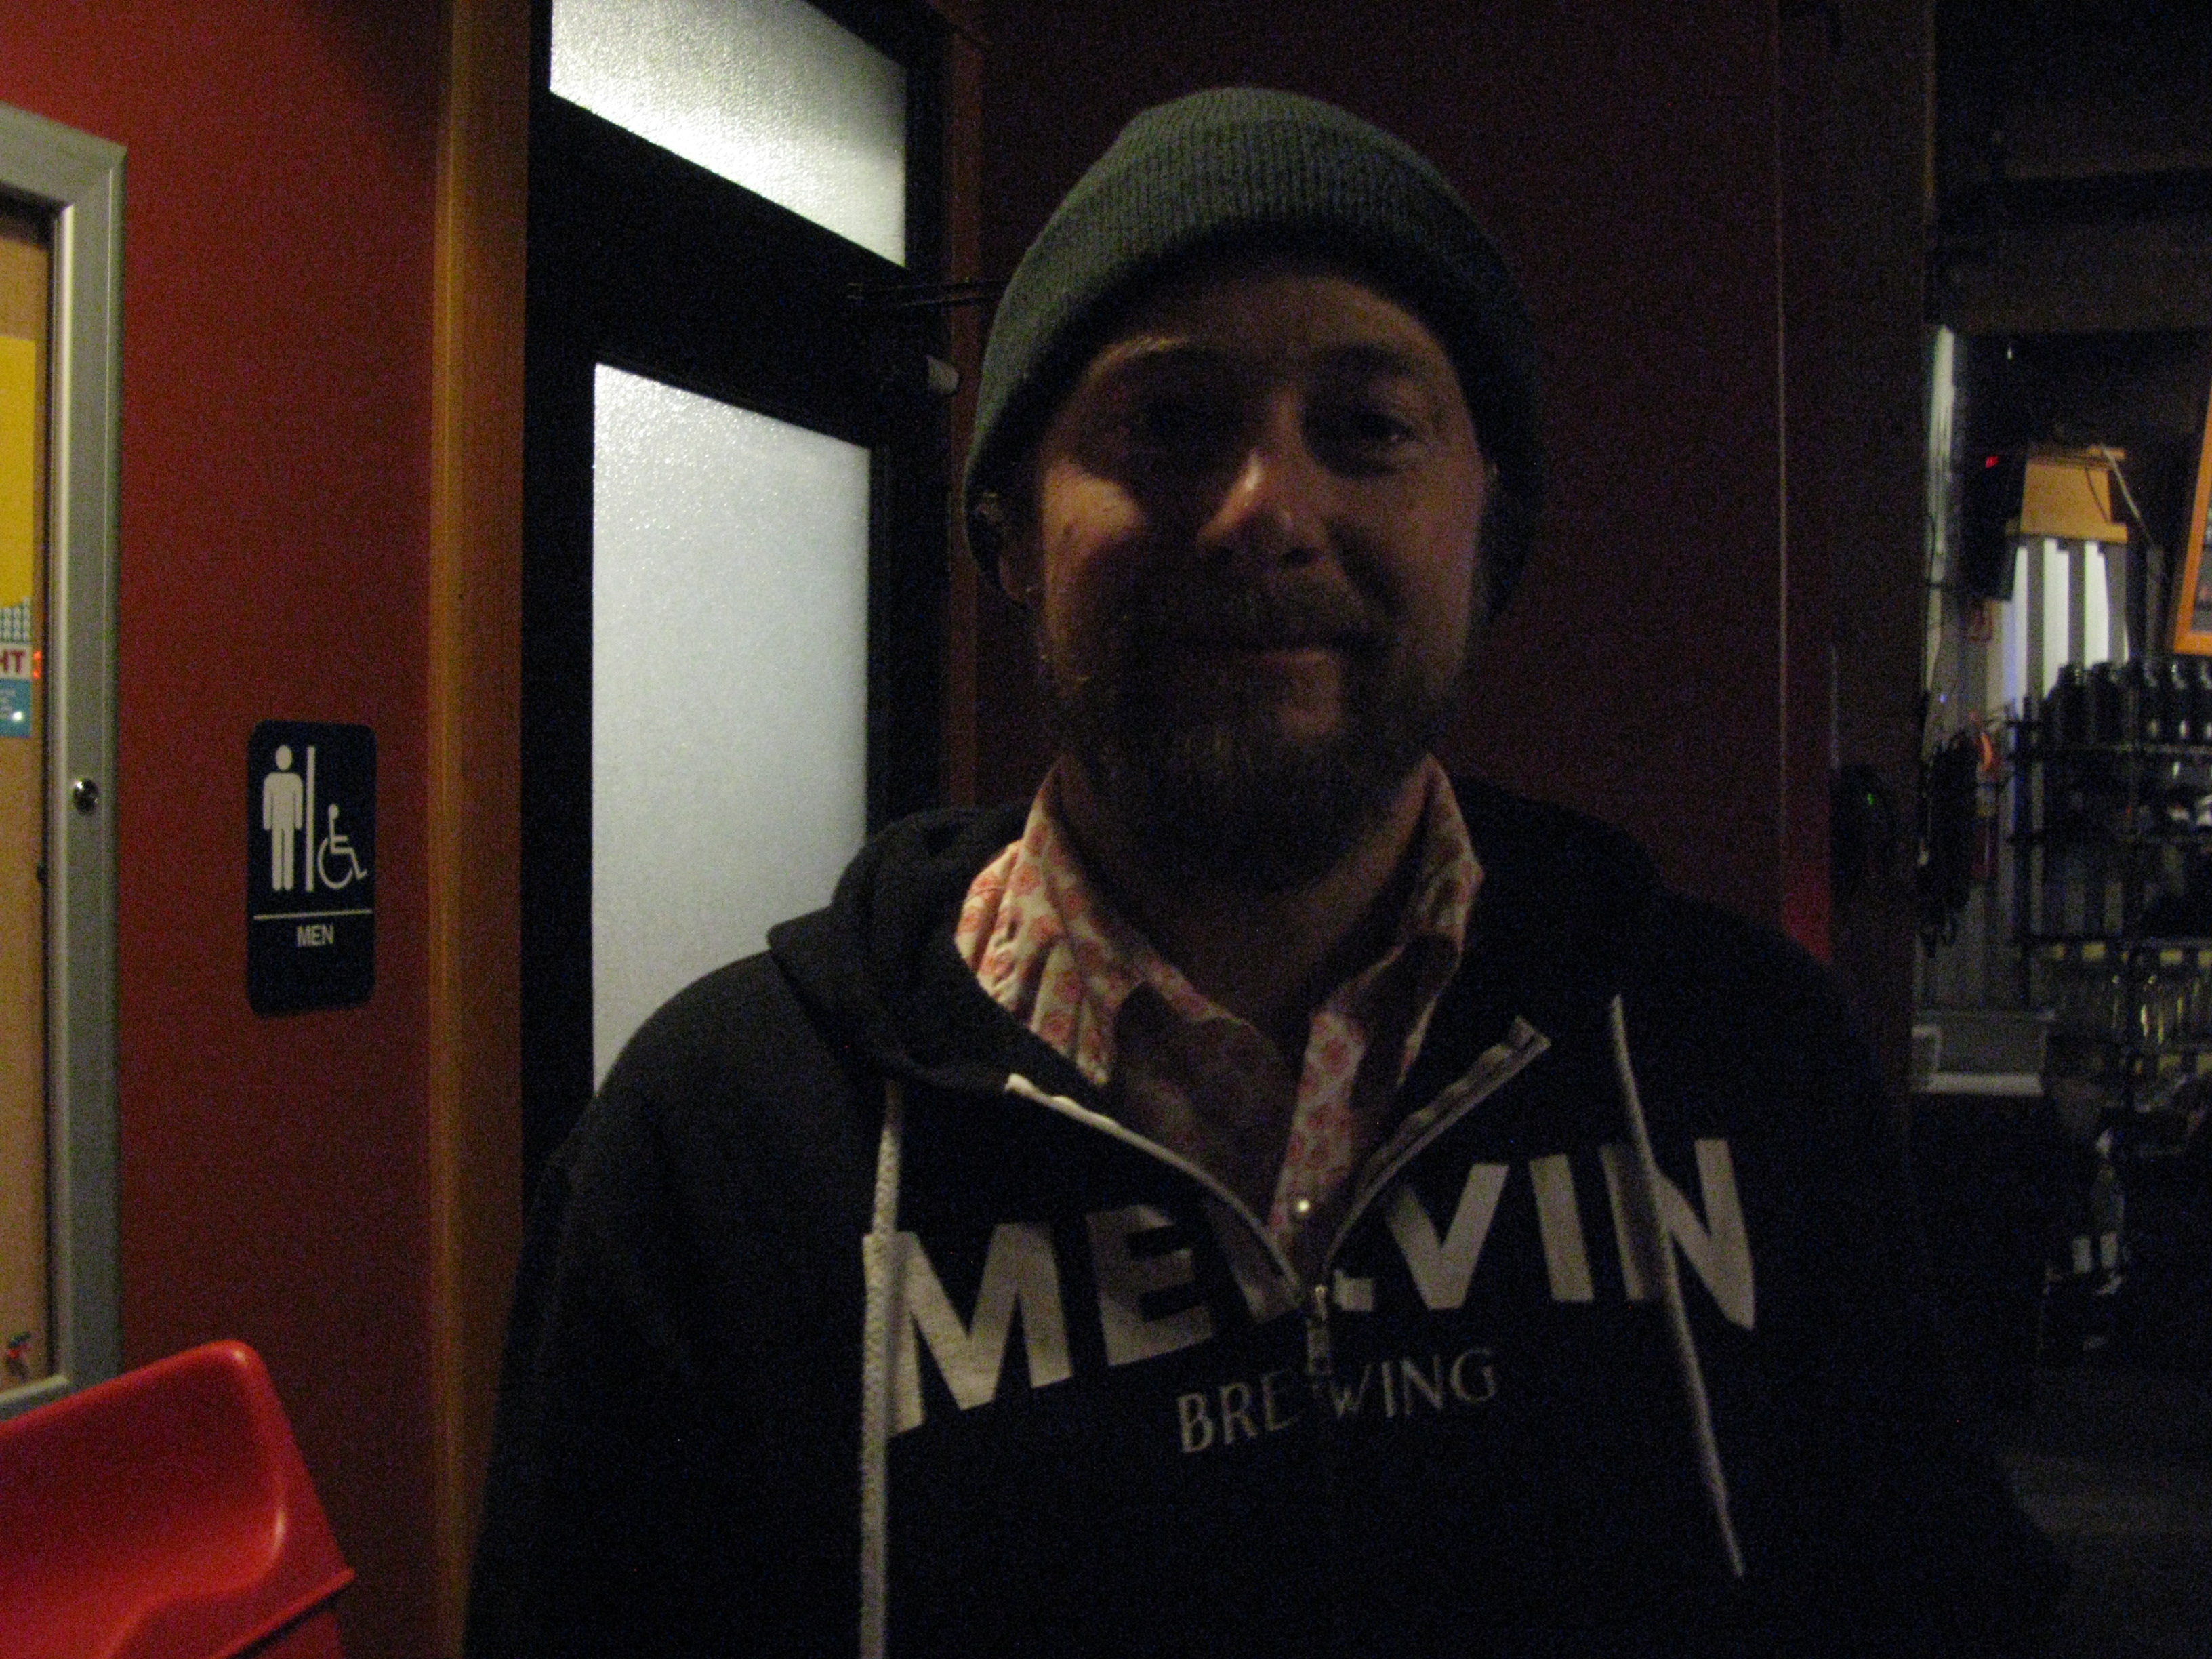 Jeremy Tofte of Wyoming's Melvin Brewing, creators of 2x4 Double IPA. (FoystonFoto)